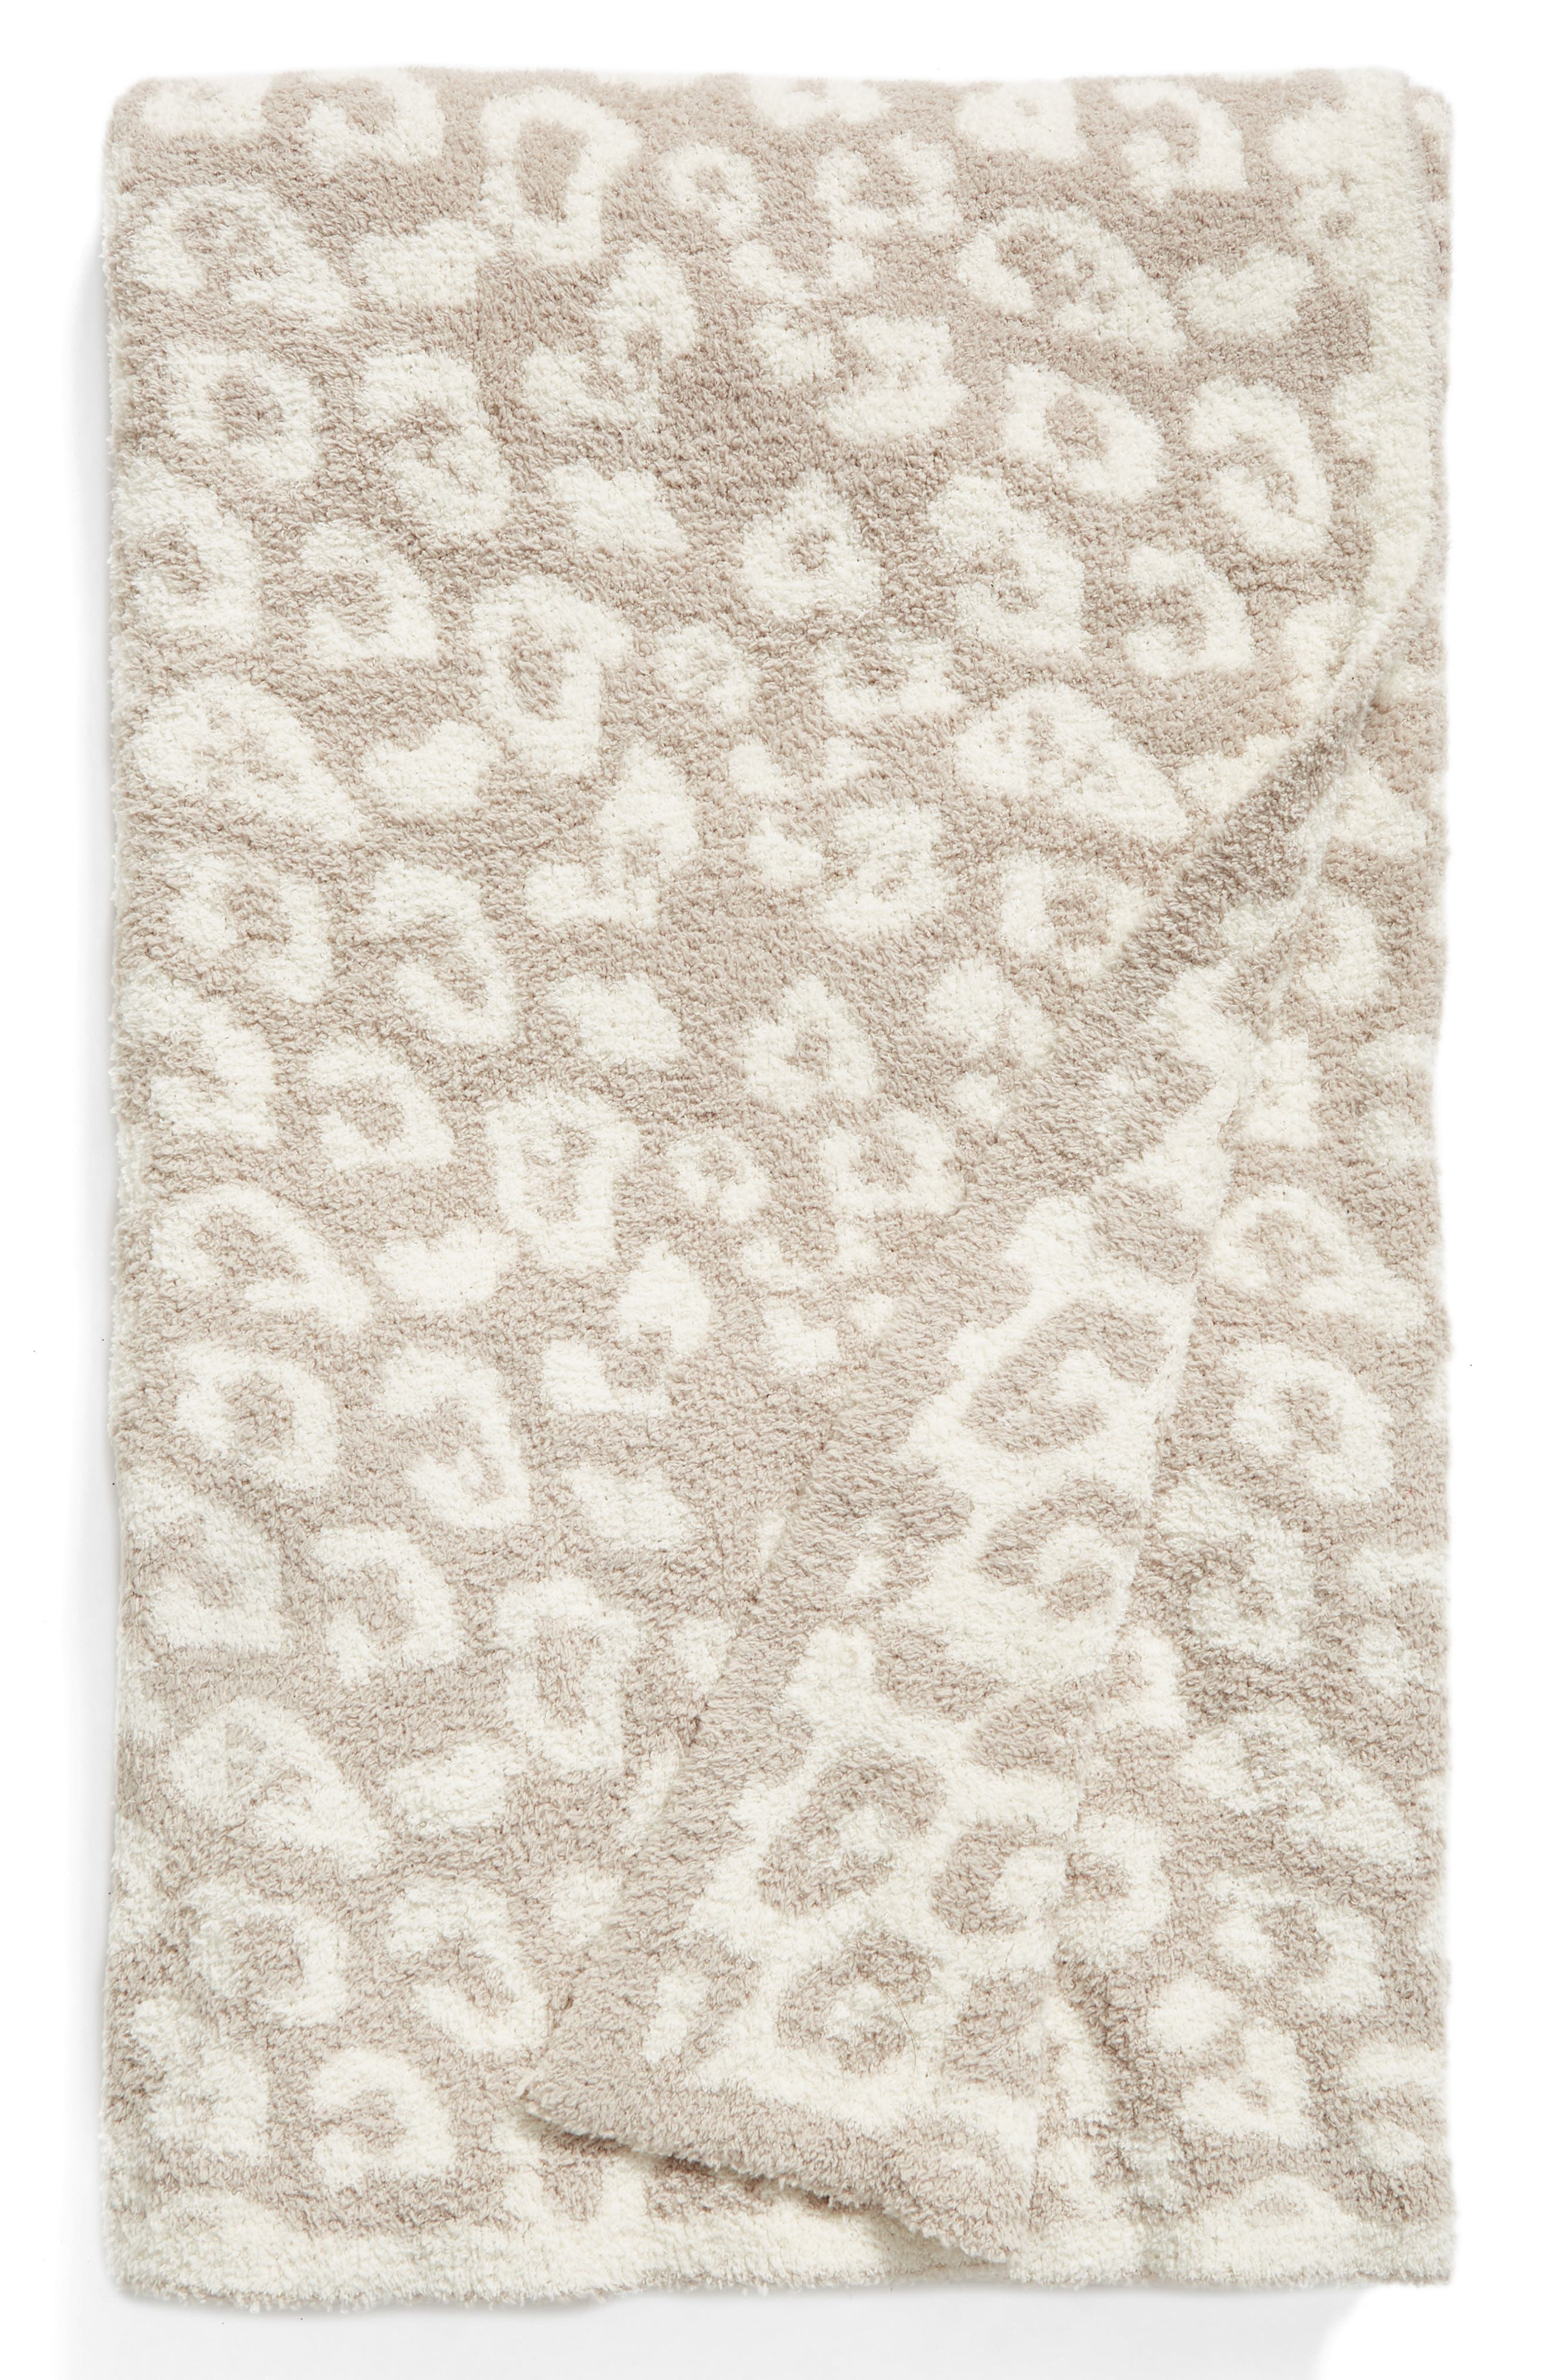 'In the Wild' Throw,                             Main thumbnail 1, color,                             Stone/ Cream